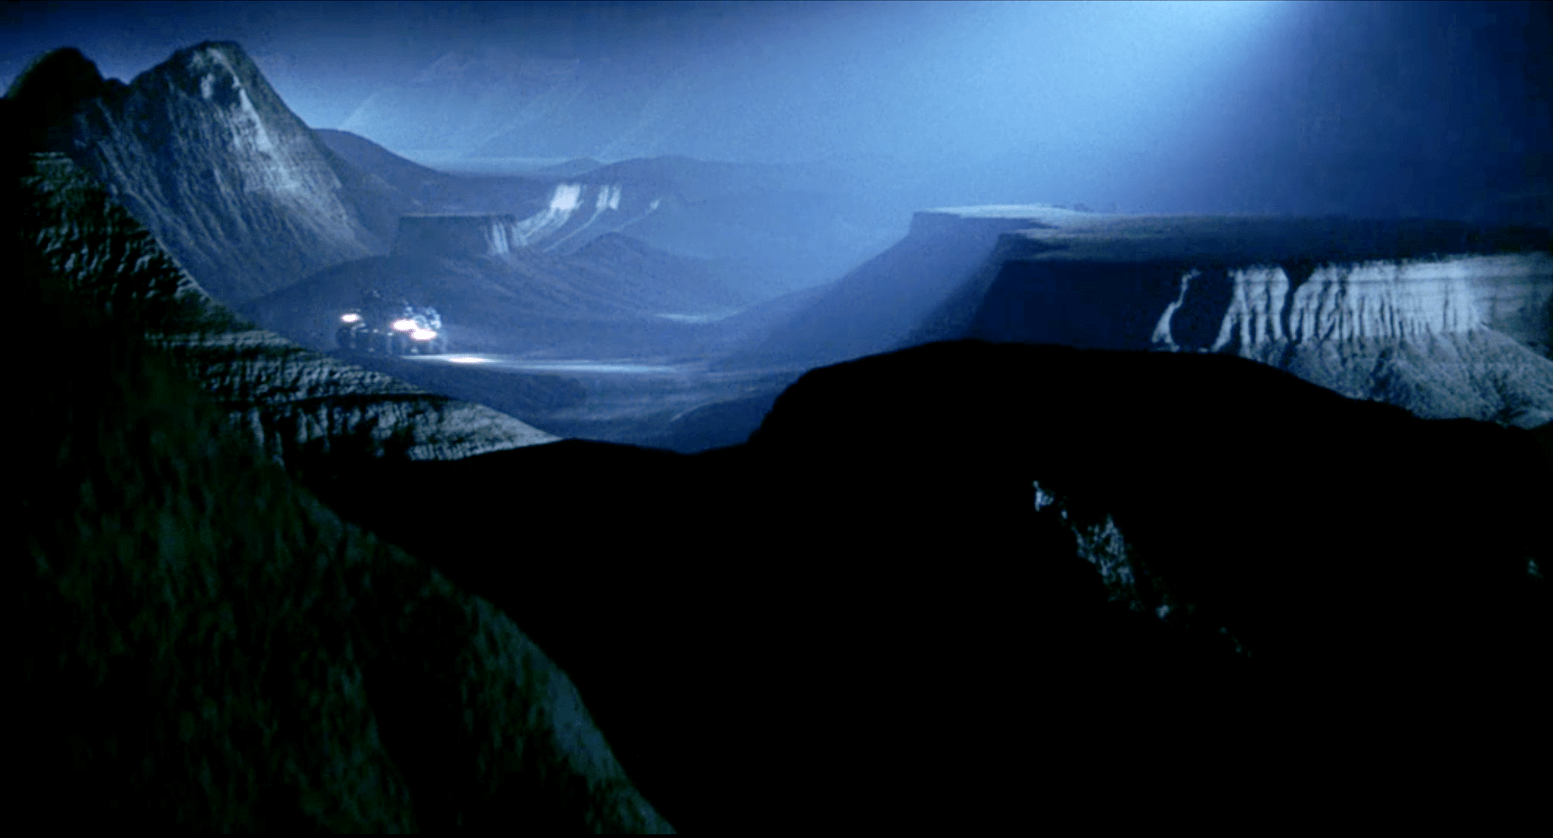 The Badlands of South Dakota on the surface of the asteroid in the film Armageddon (1998).